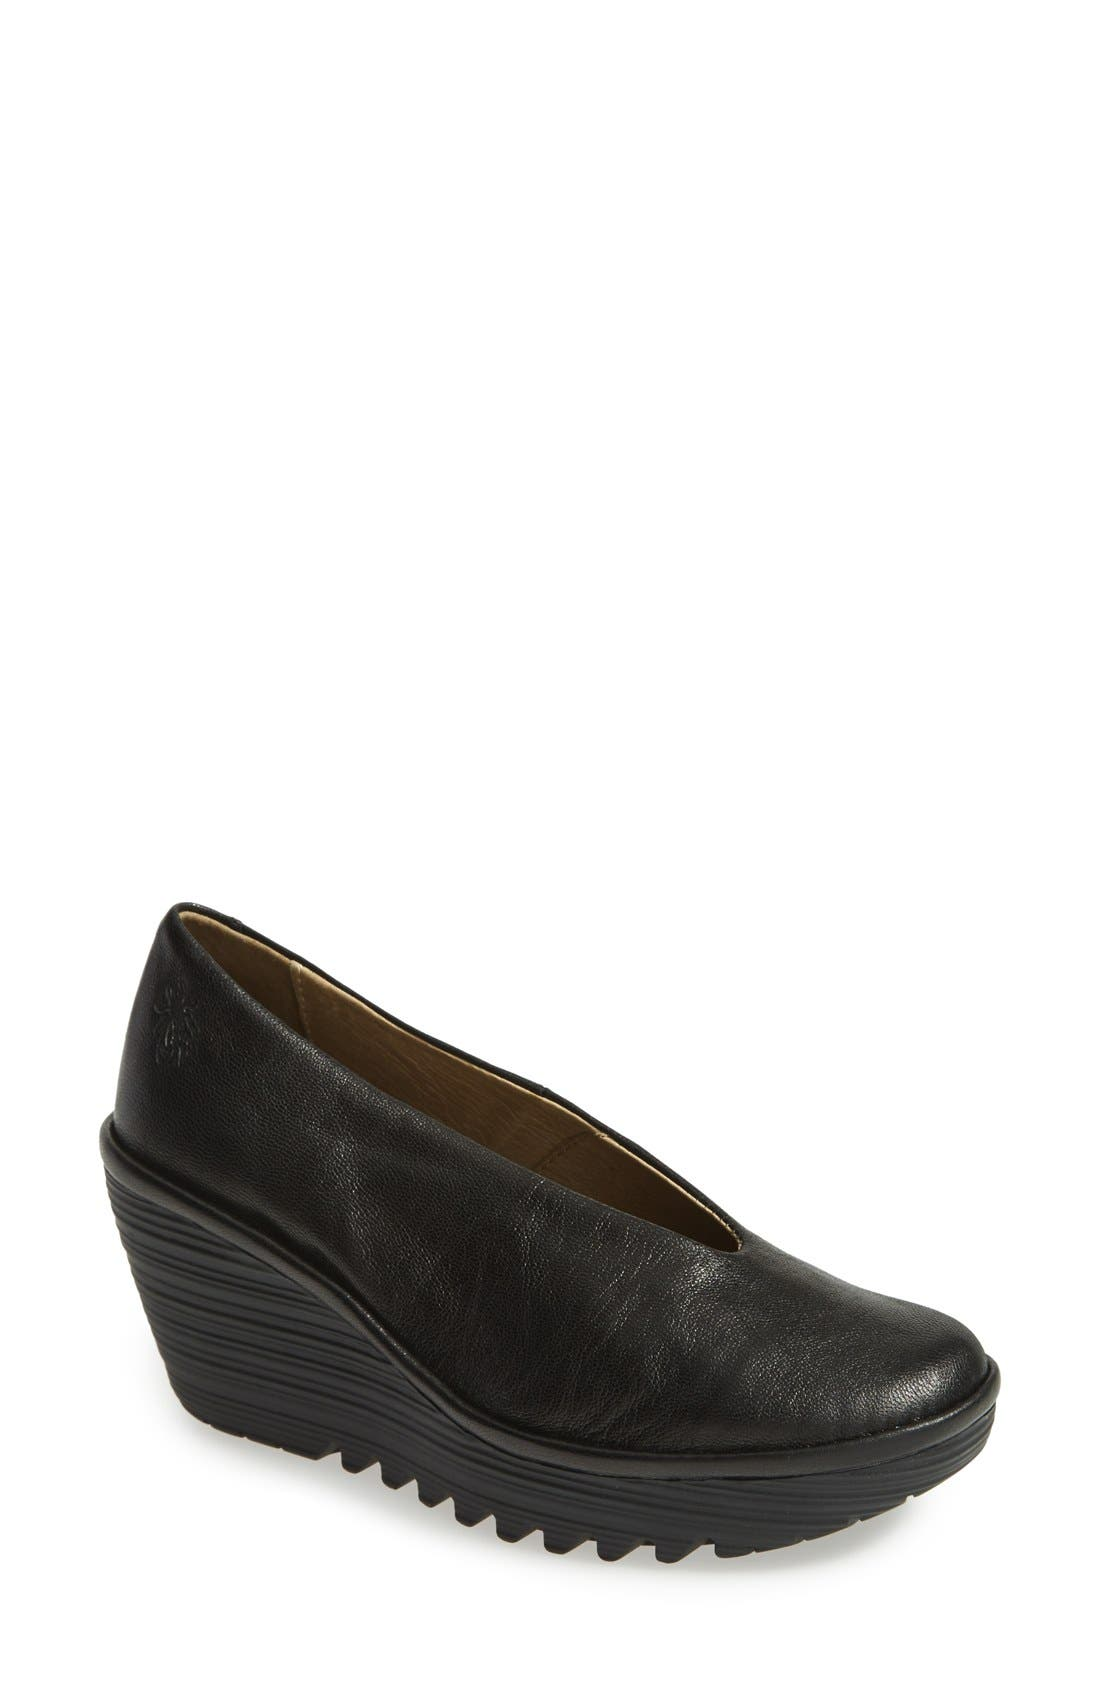 Main Image - Fly London 'Yaz' Wedge Pump